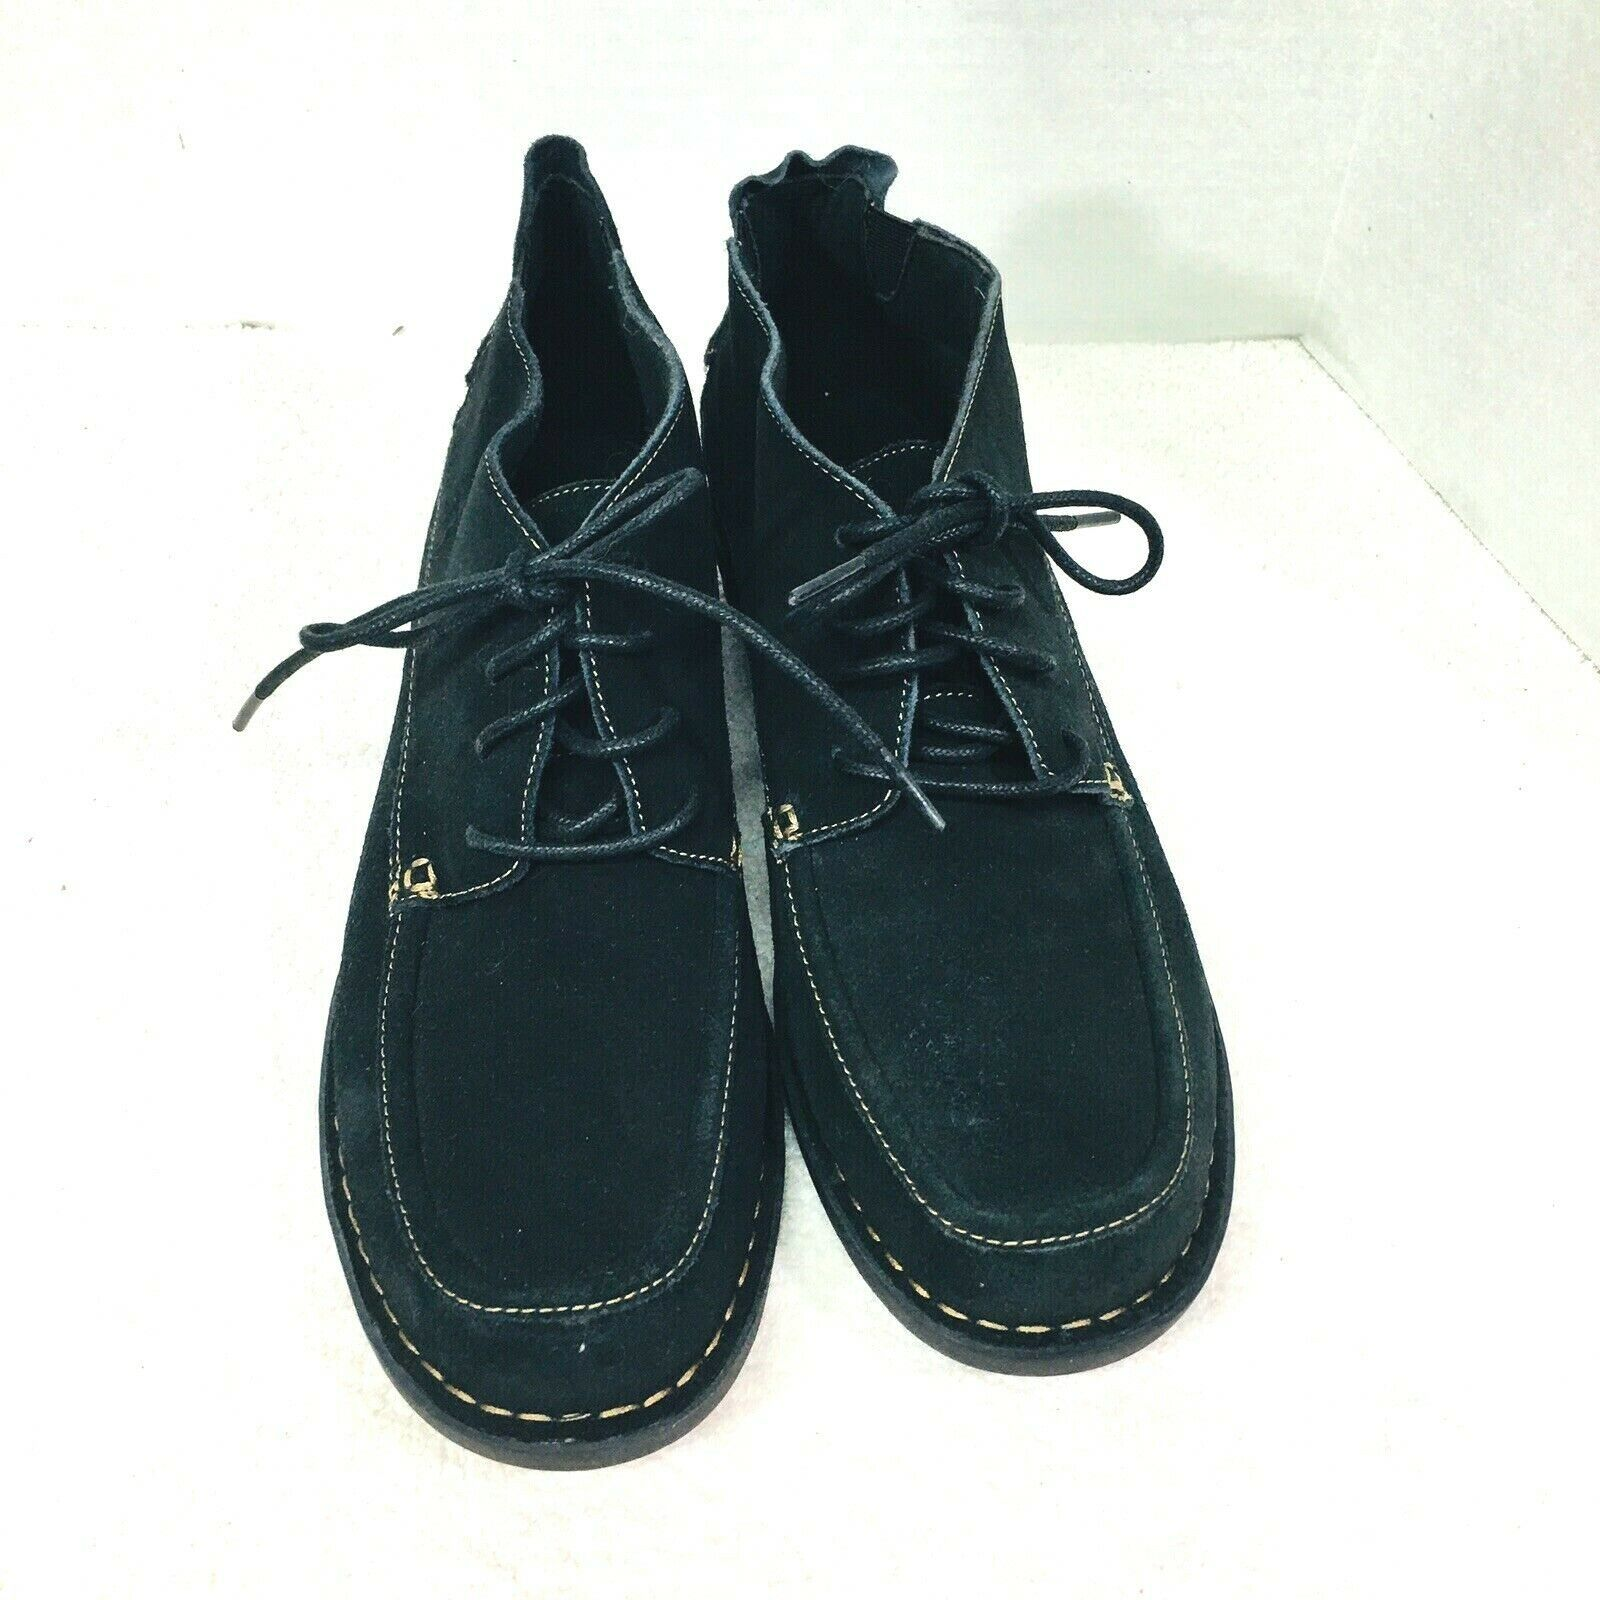 Primary image for Clarks Bendable Shoes Black Lace Up  Leather  New  No Box 11W